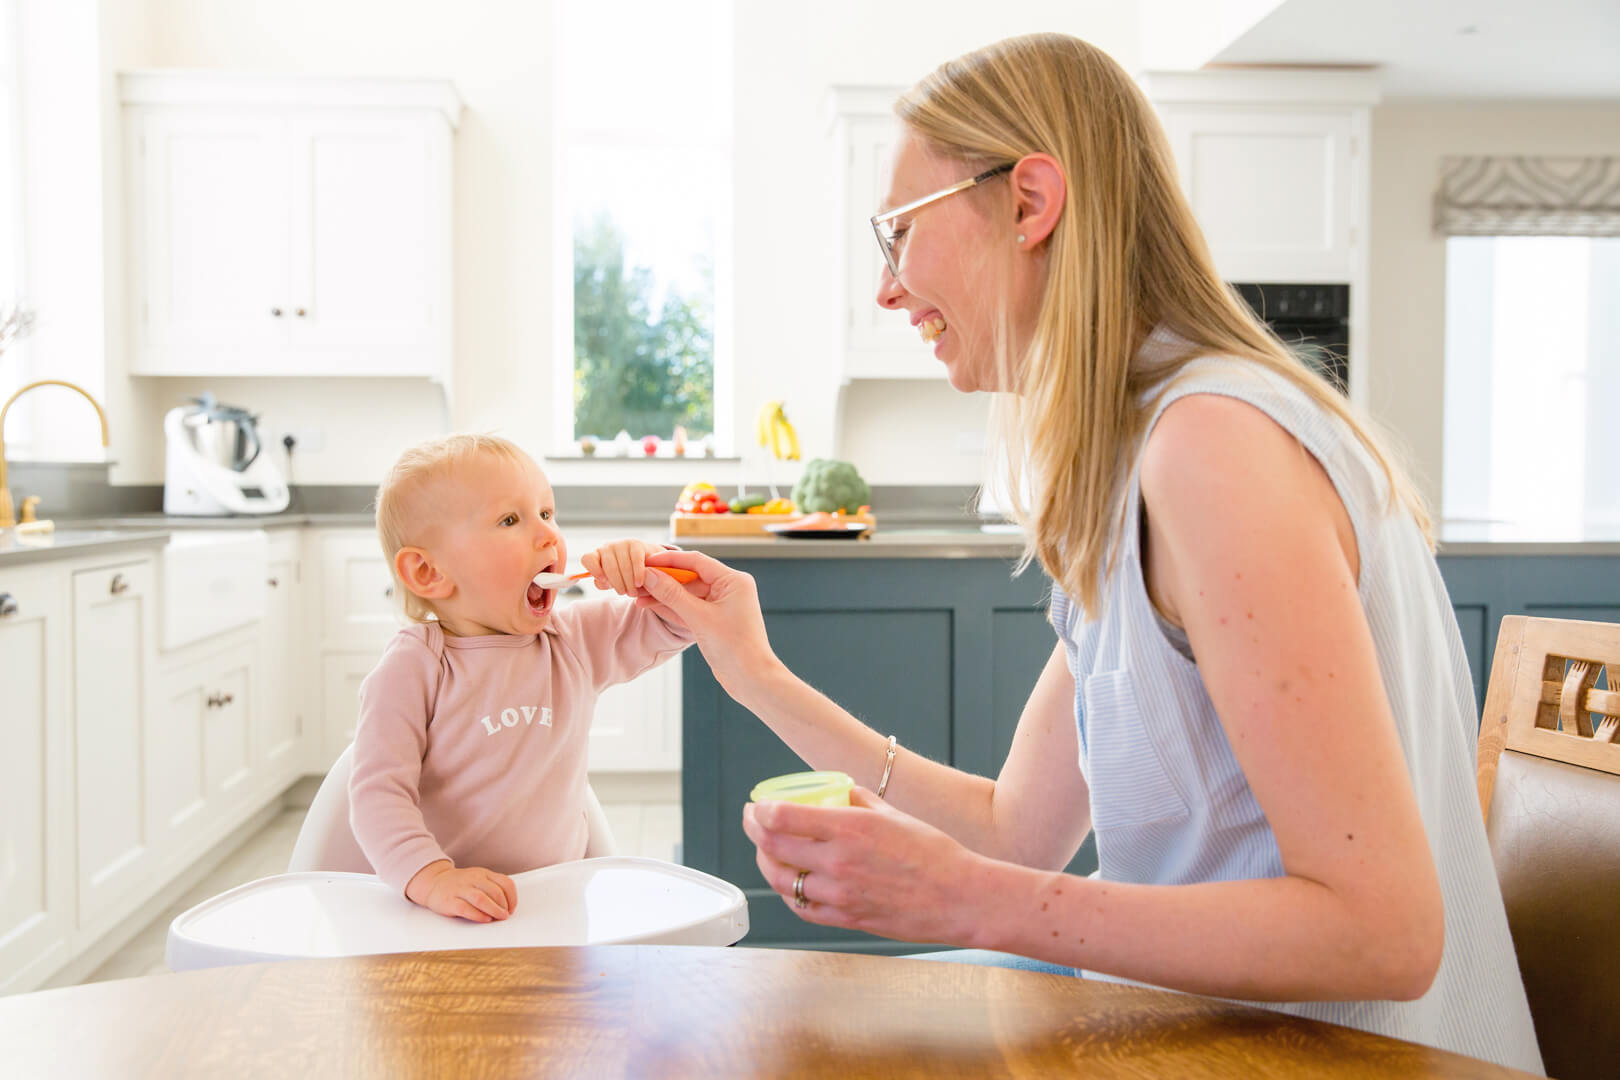 Mother Feeding Baby | The Mustcard